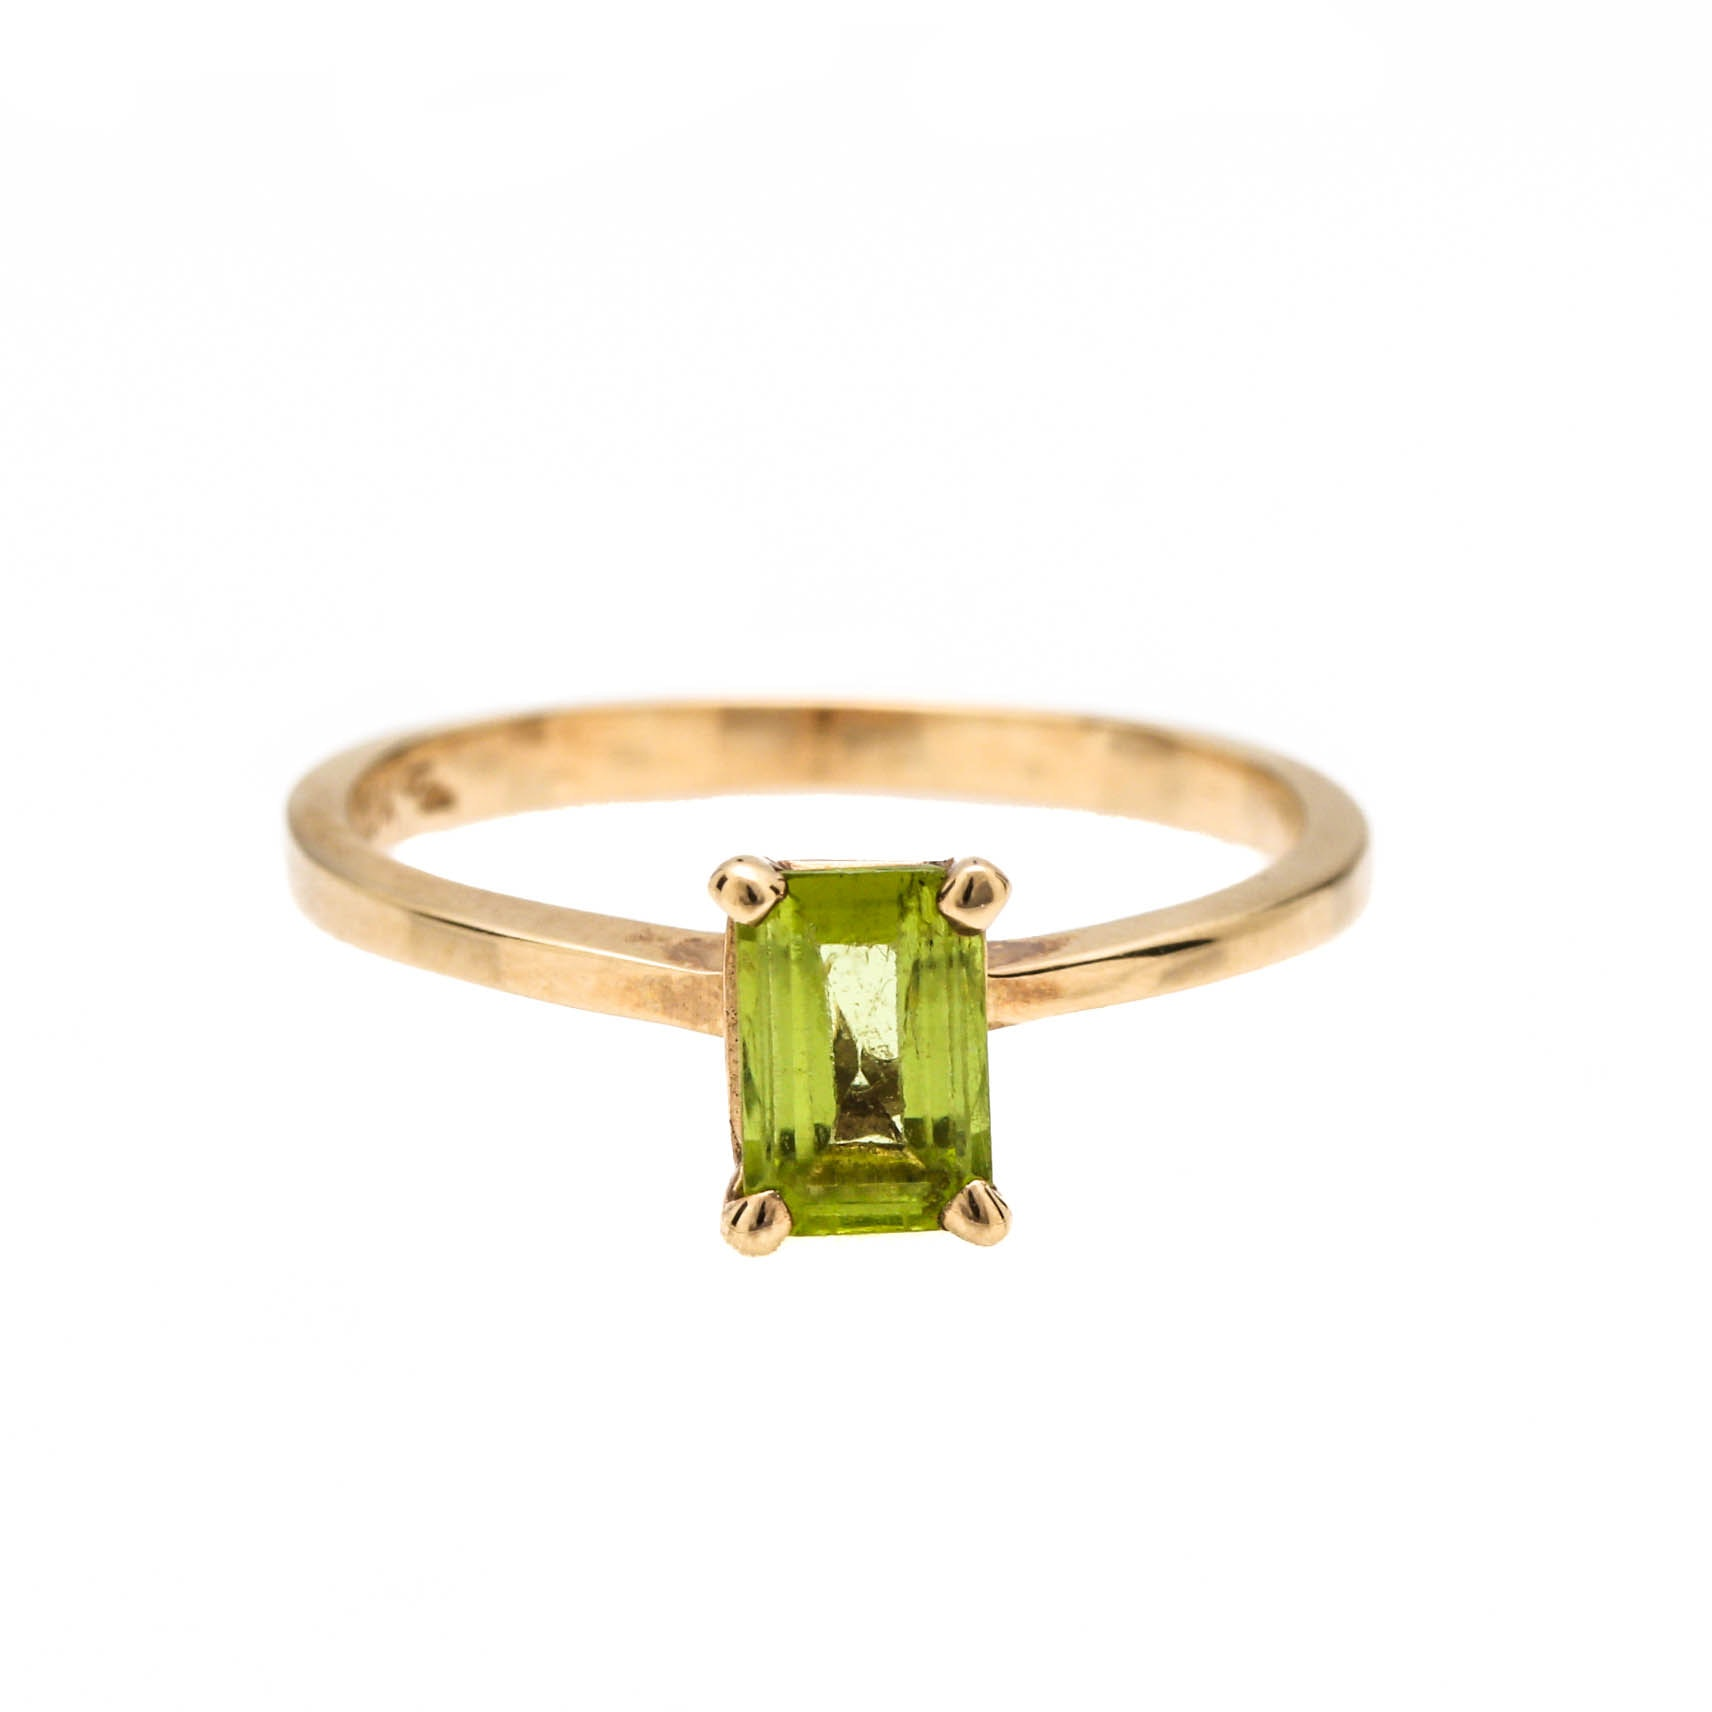 10K Yellow Gold Peridot Solitaire Ring